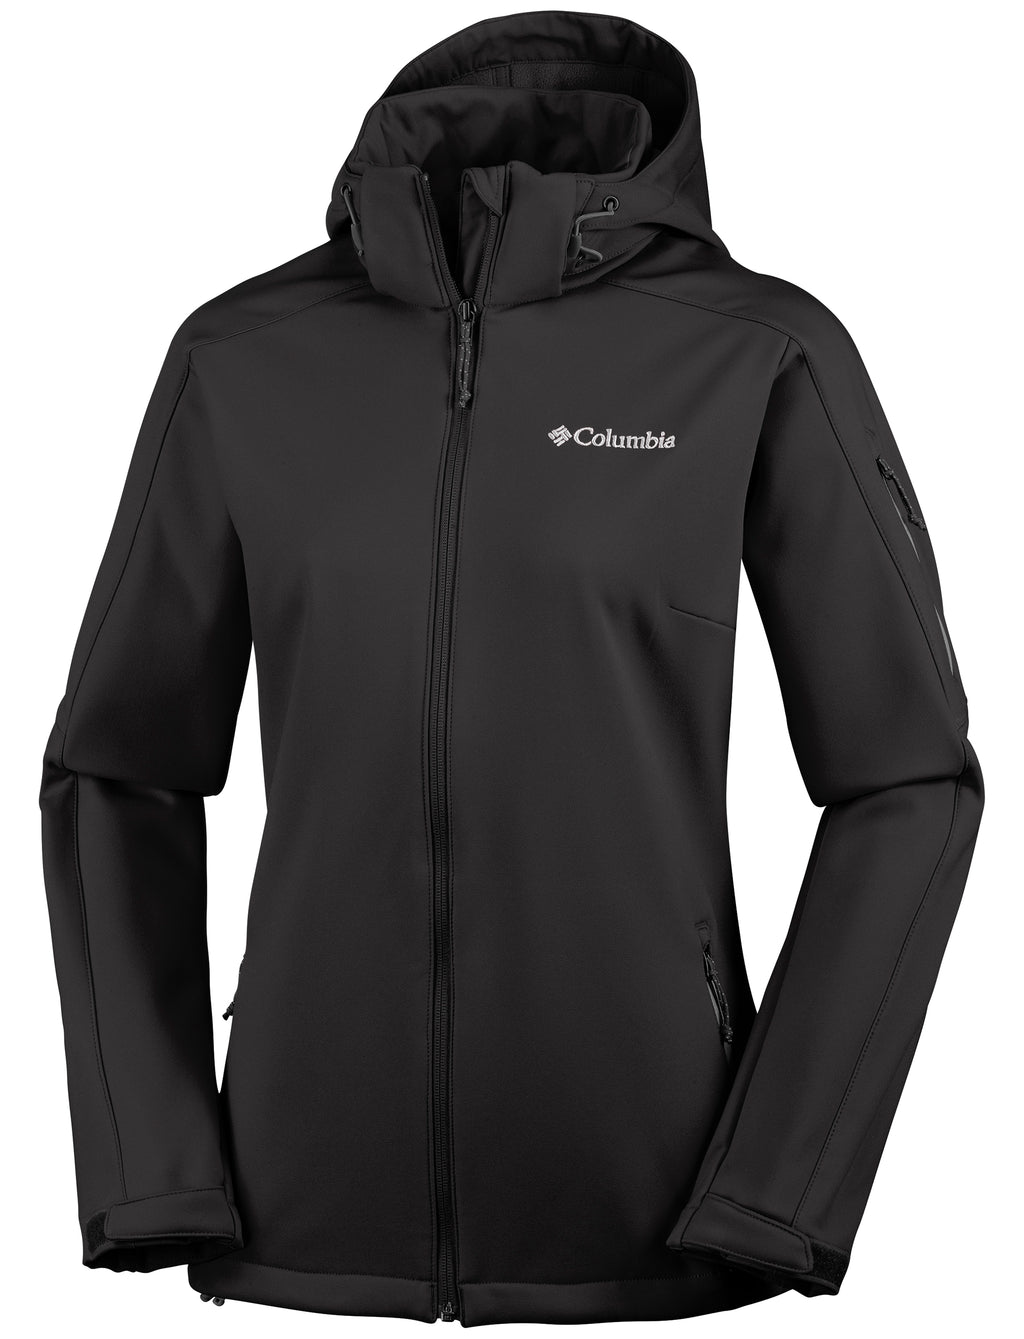 Columbia Women's Cascade Ridge Soft Shell promotional Jacket